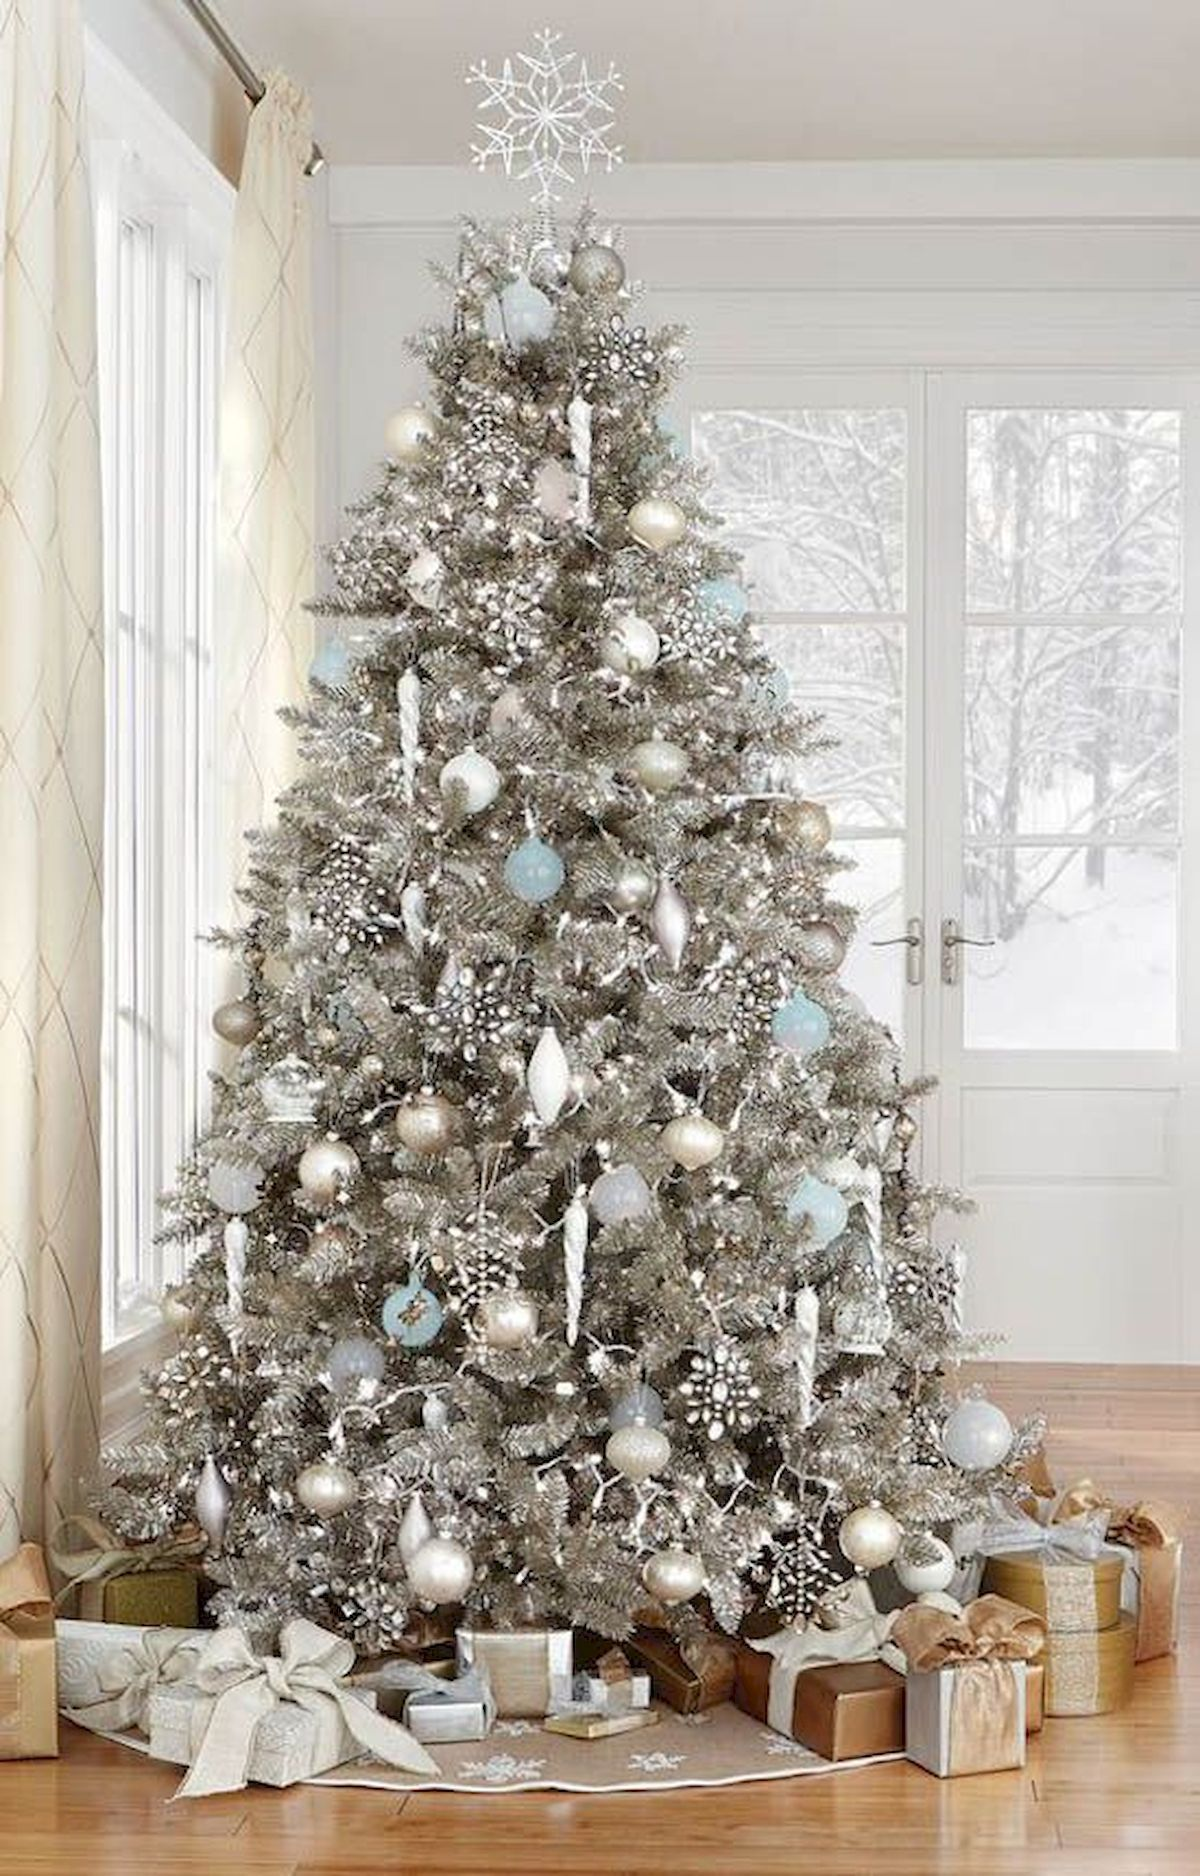 40 Elegant Christmas Tree Decorations Ideas 4 Holiday Home